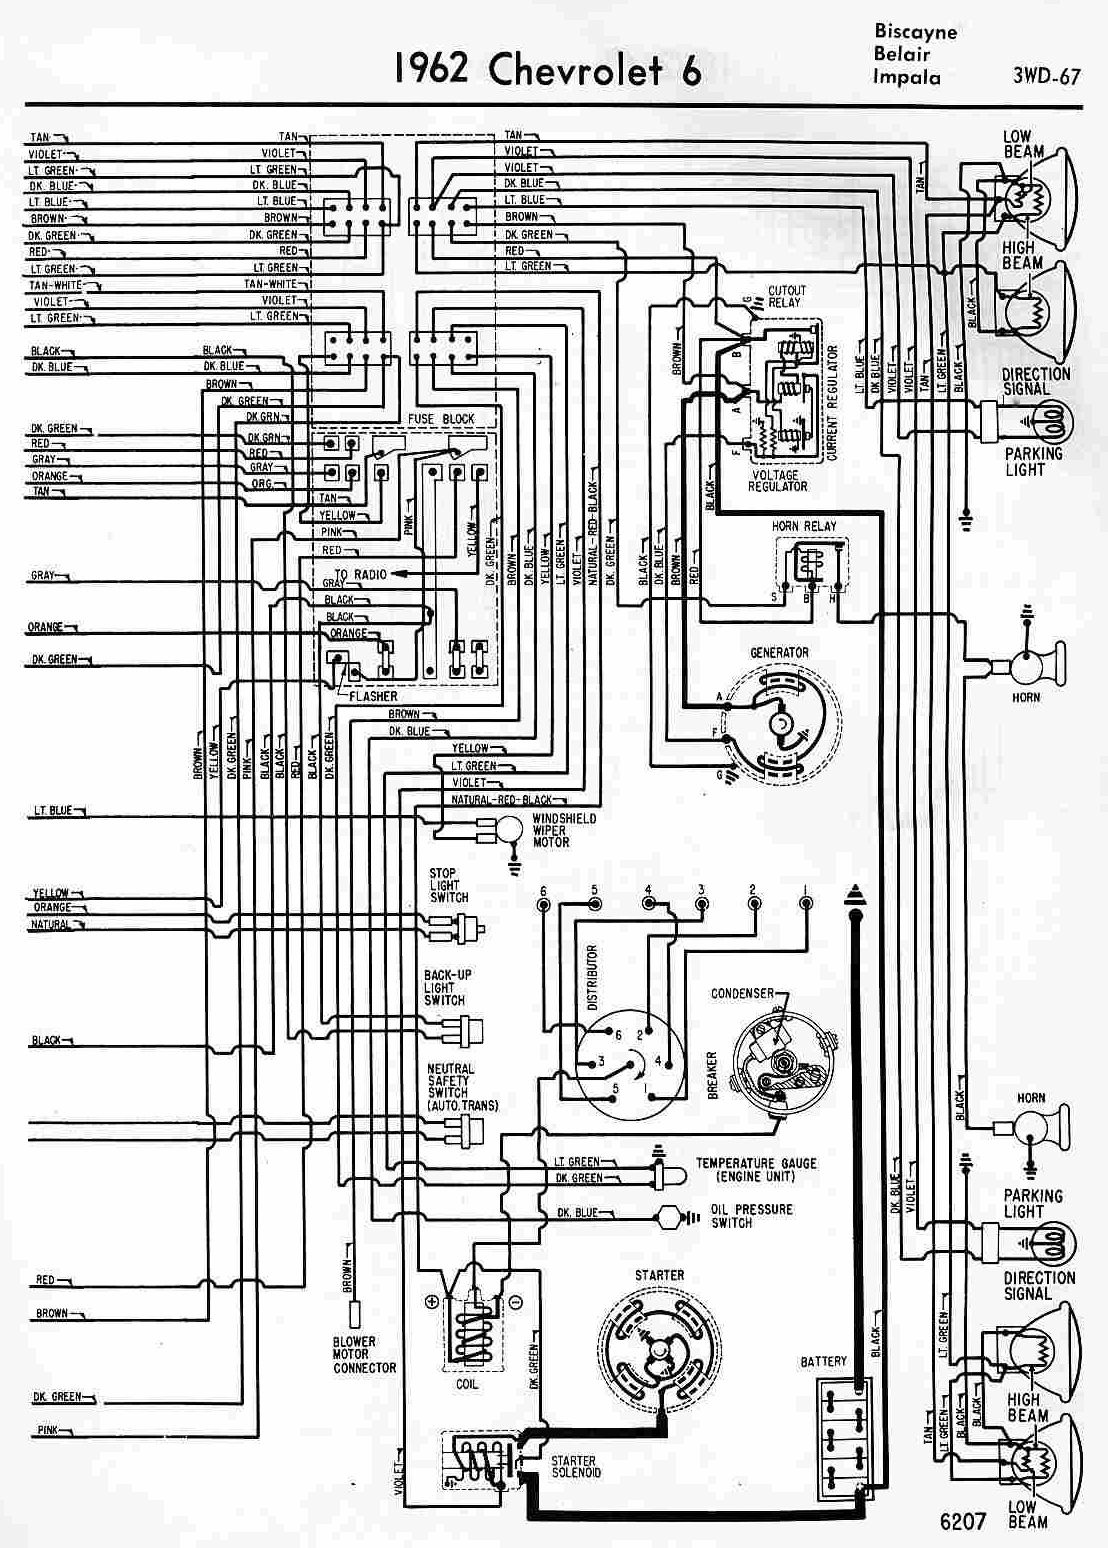 01 Impala Wiring Diagram Quick Start Guide Of 2004 Chevrolet Radio Diagrams Windowiring Simple Rh 30 Terranut Store 2001 Abs